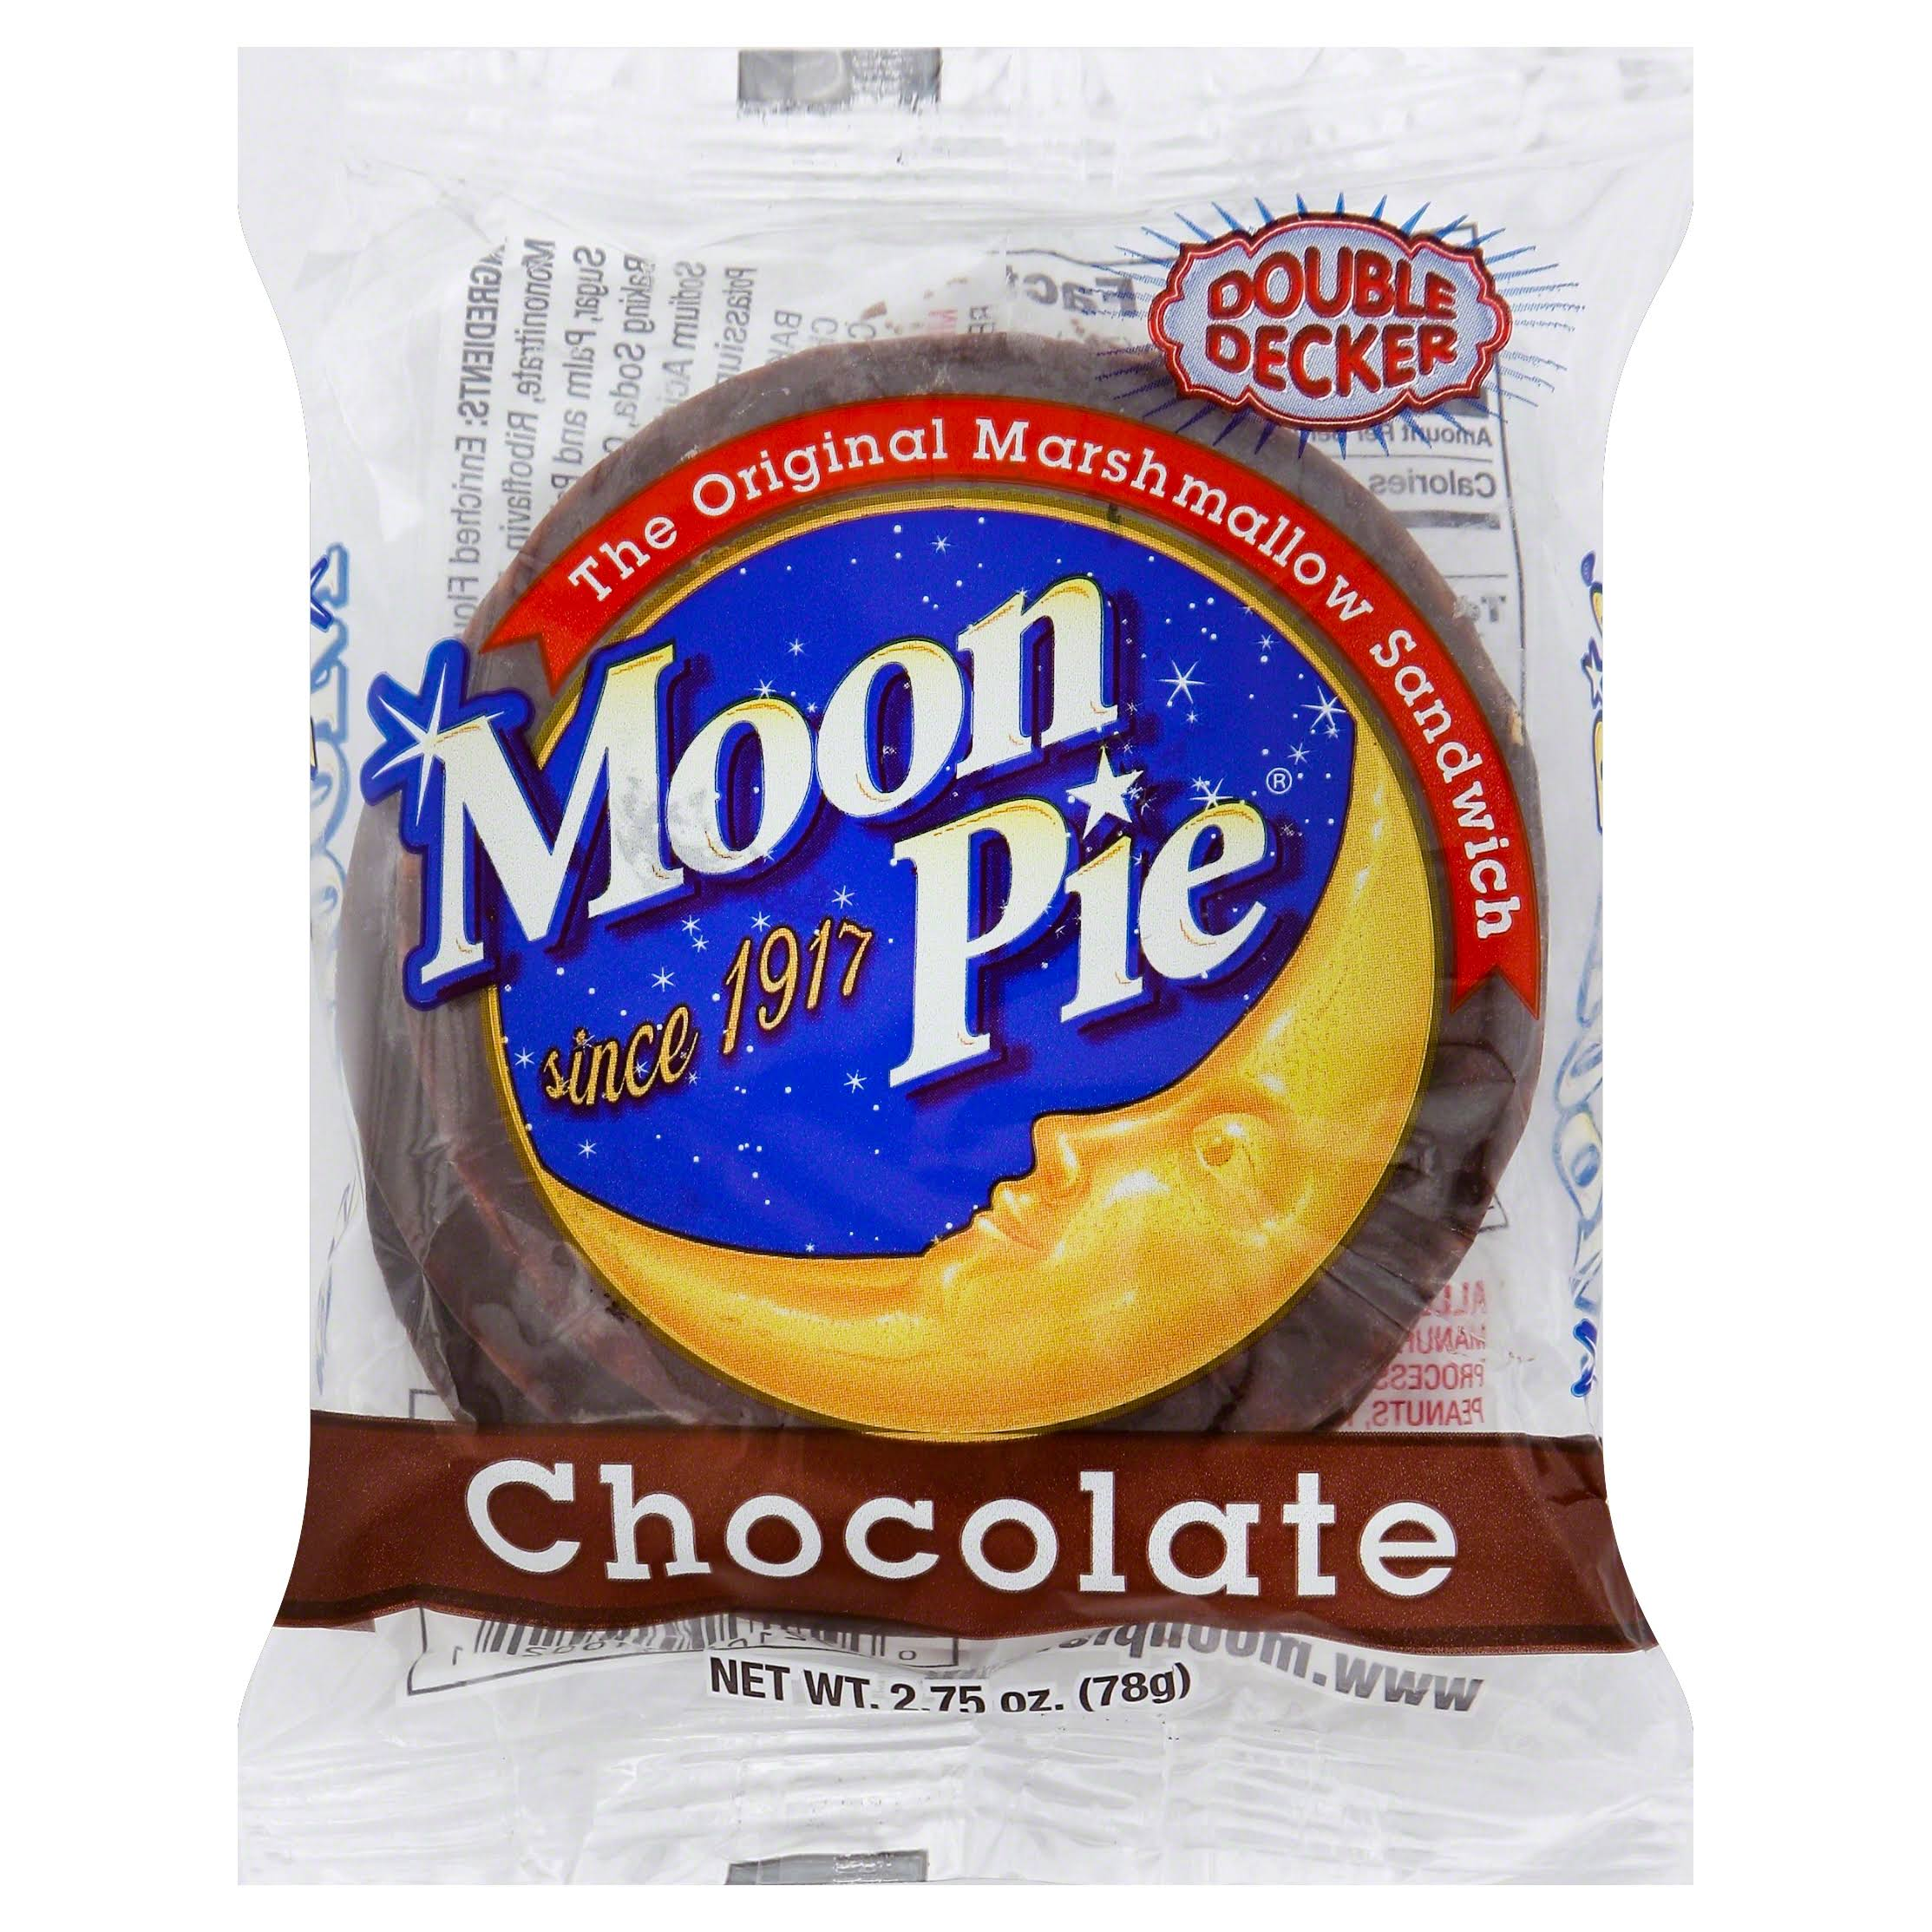 Moon Pie Marshmallow Sandwich, Chocolate, Double Decker - 2.75 oz